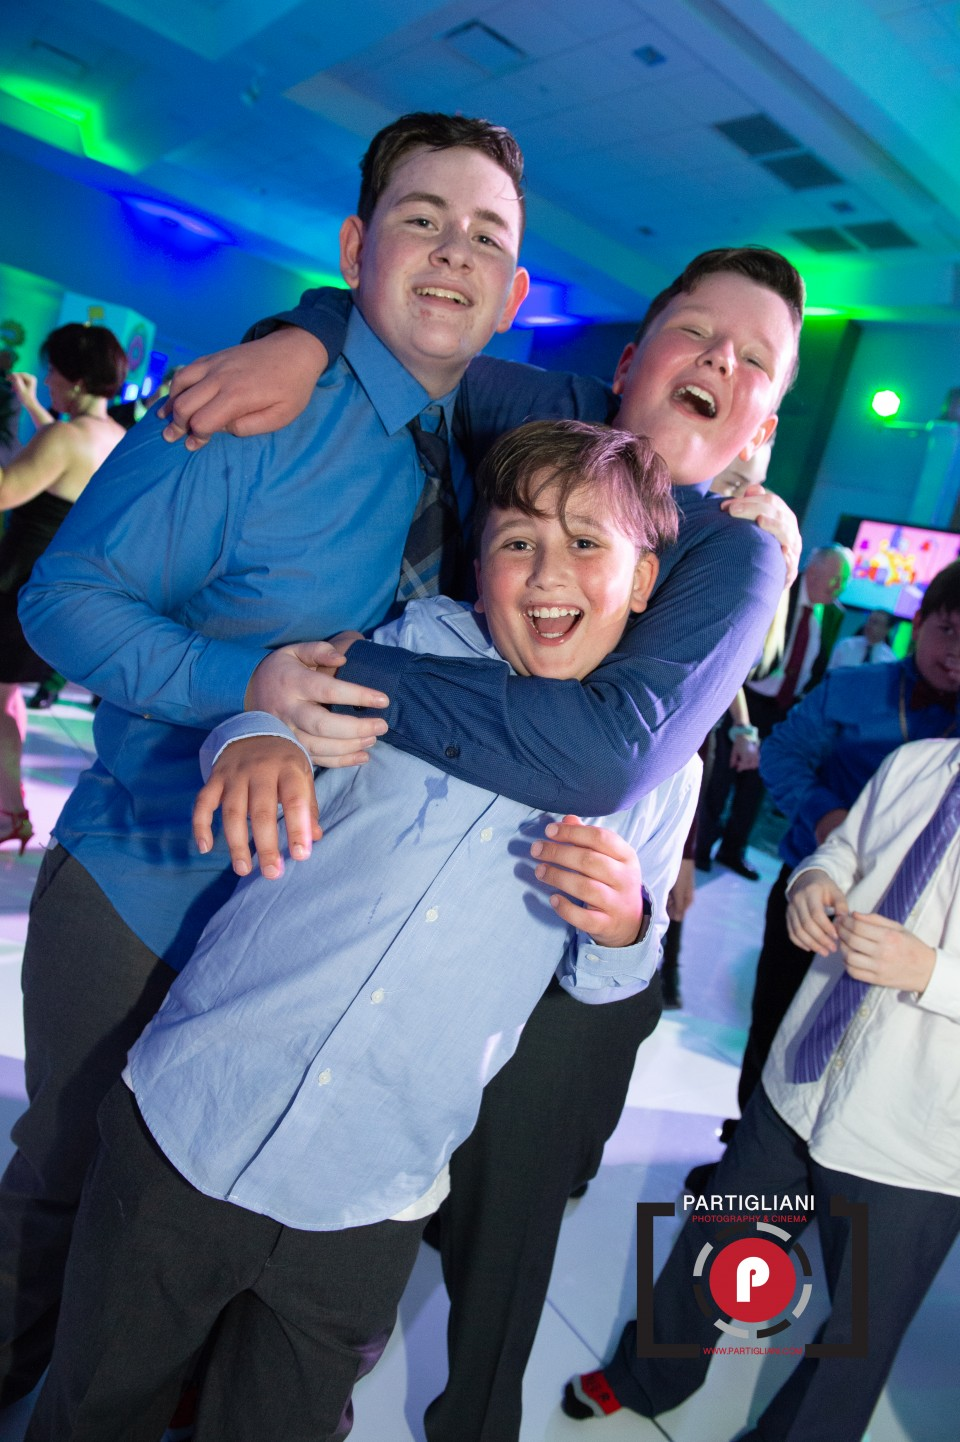 TEMPLE BETH EL, PARTIGLIANI PHOTOGRAPHY- BEN'S BAR MITZVAH-85